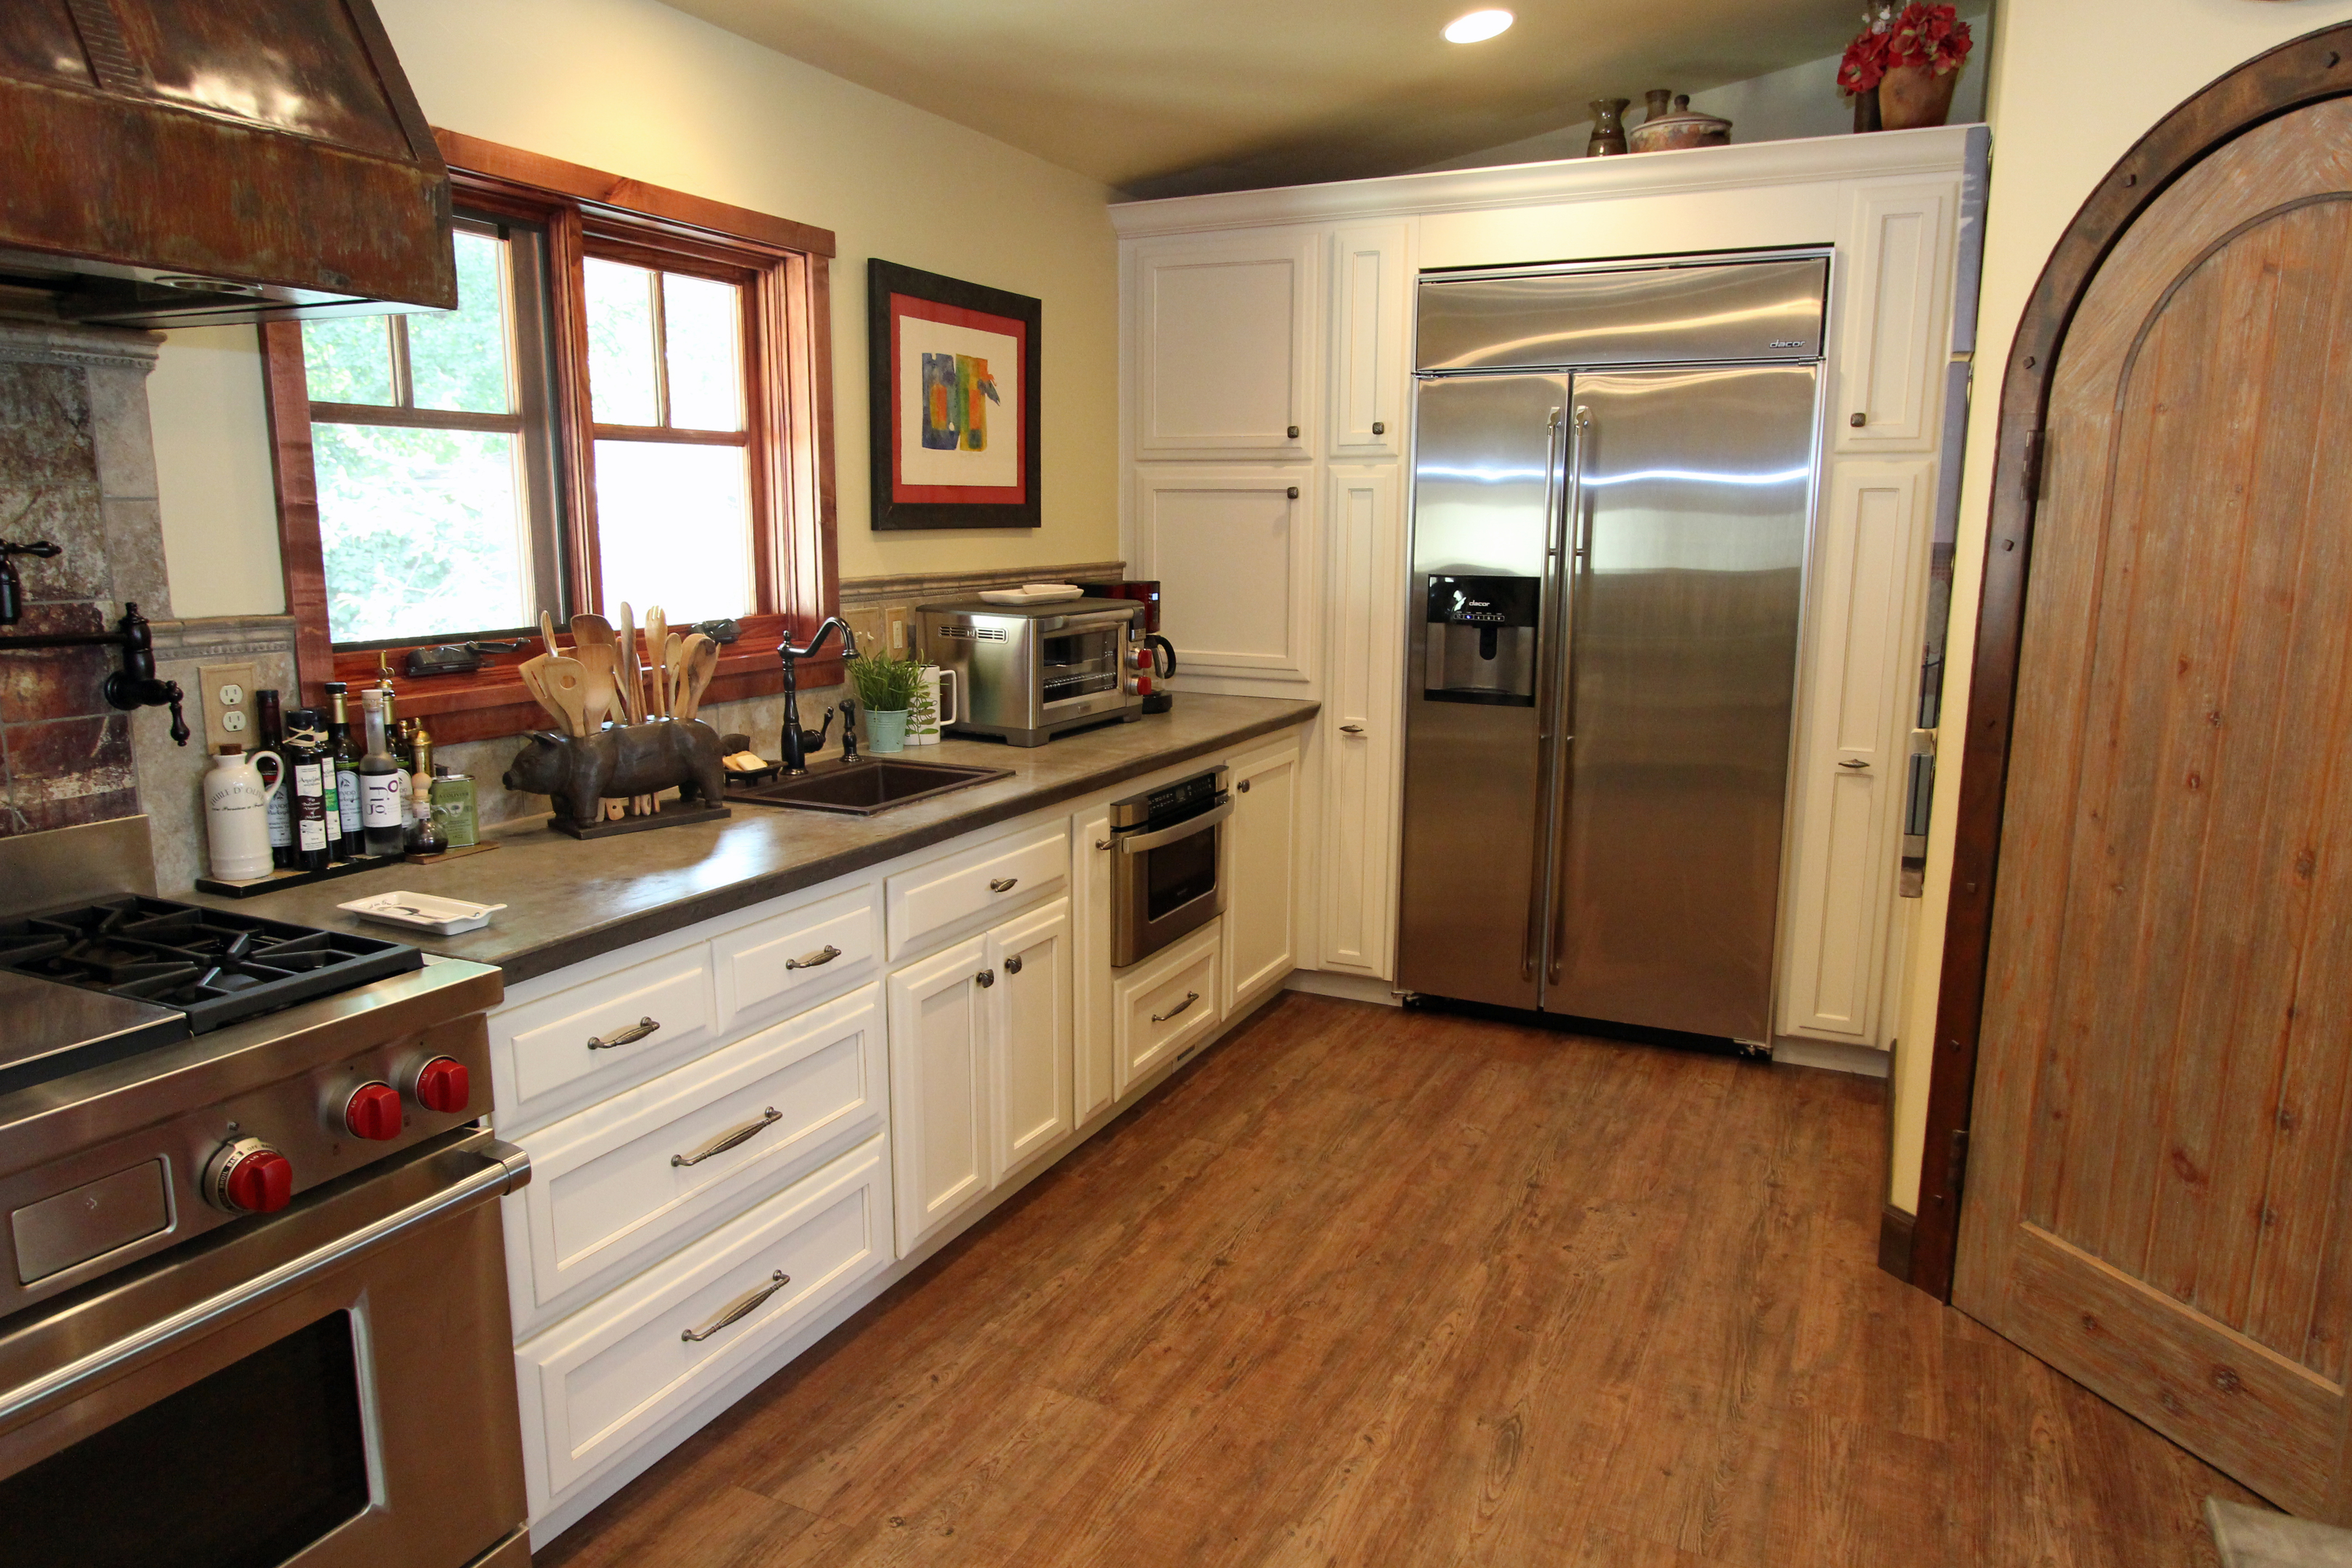 100 hybrid kitchen affordable custom cabinets showroom for Affordable custom kitchen cabinets